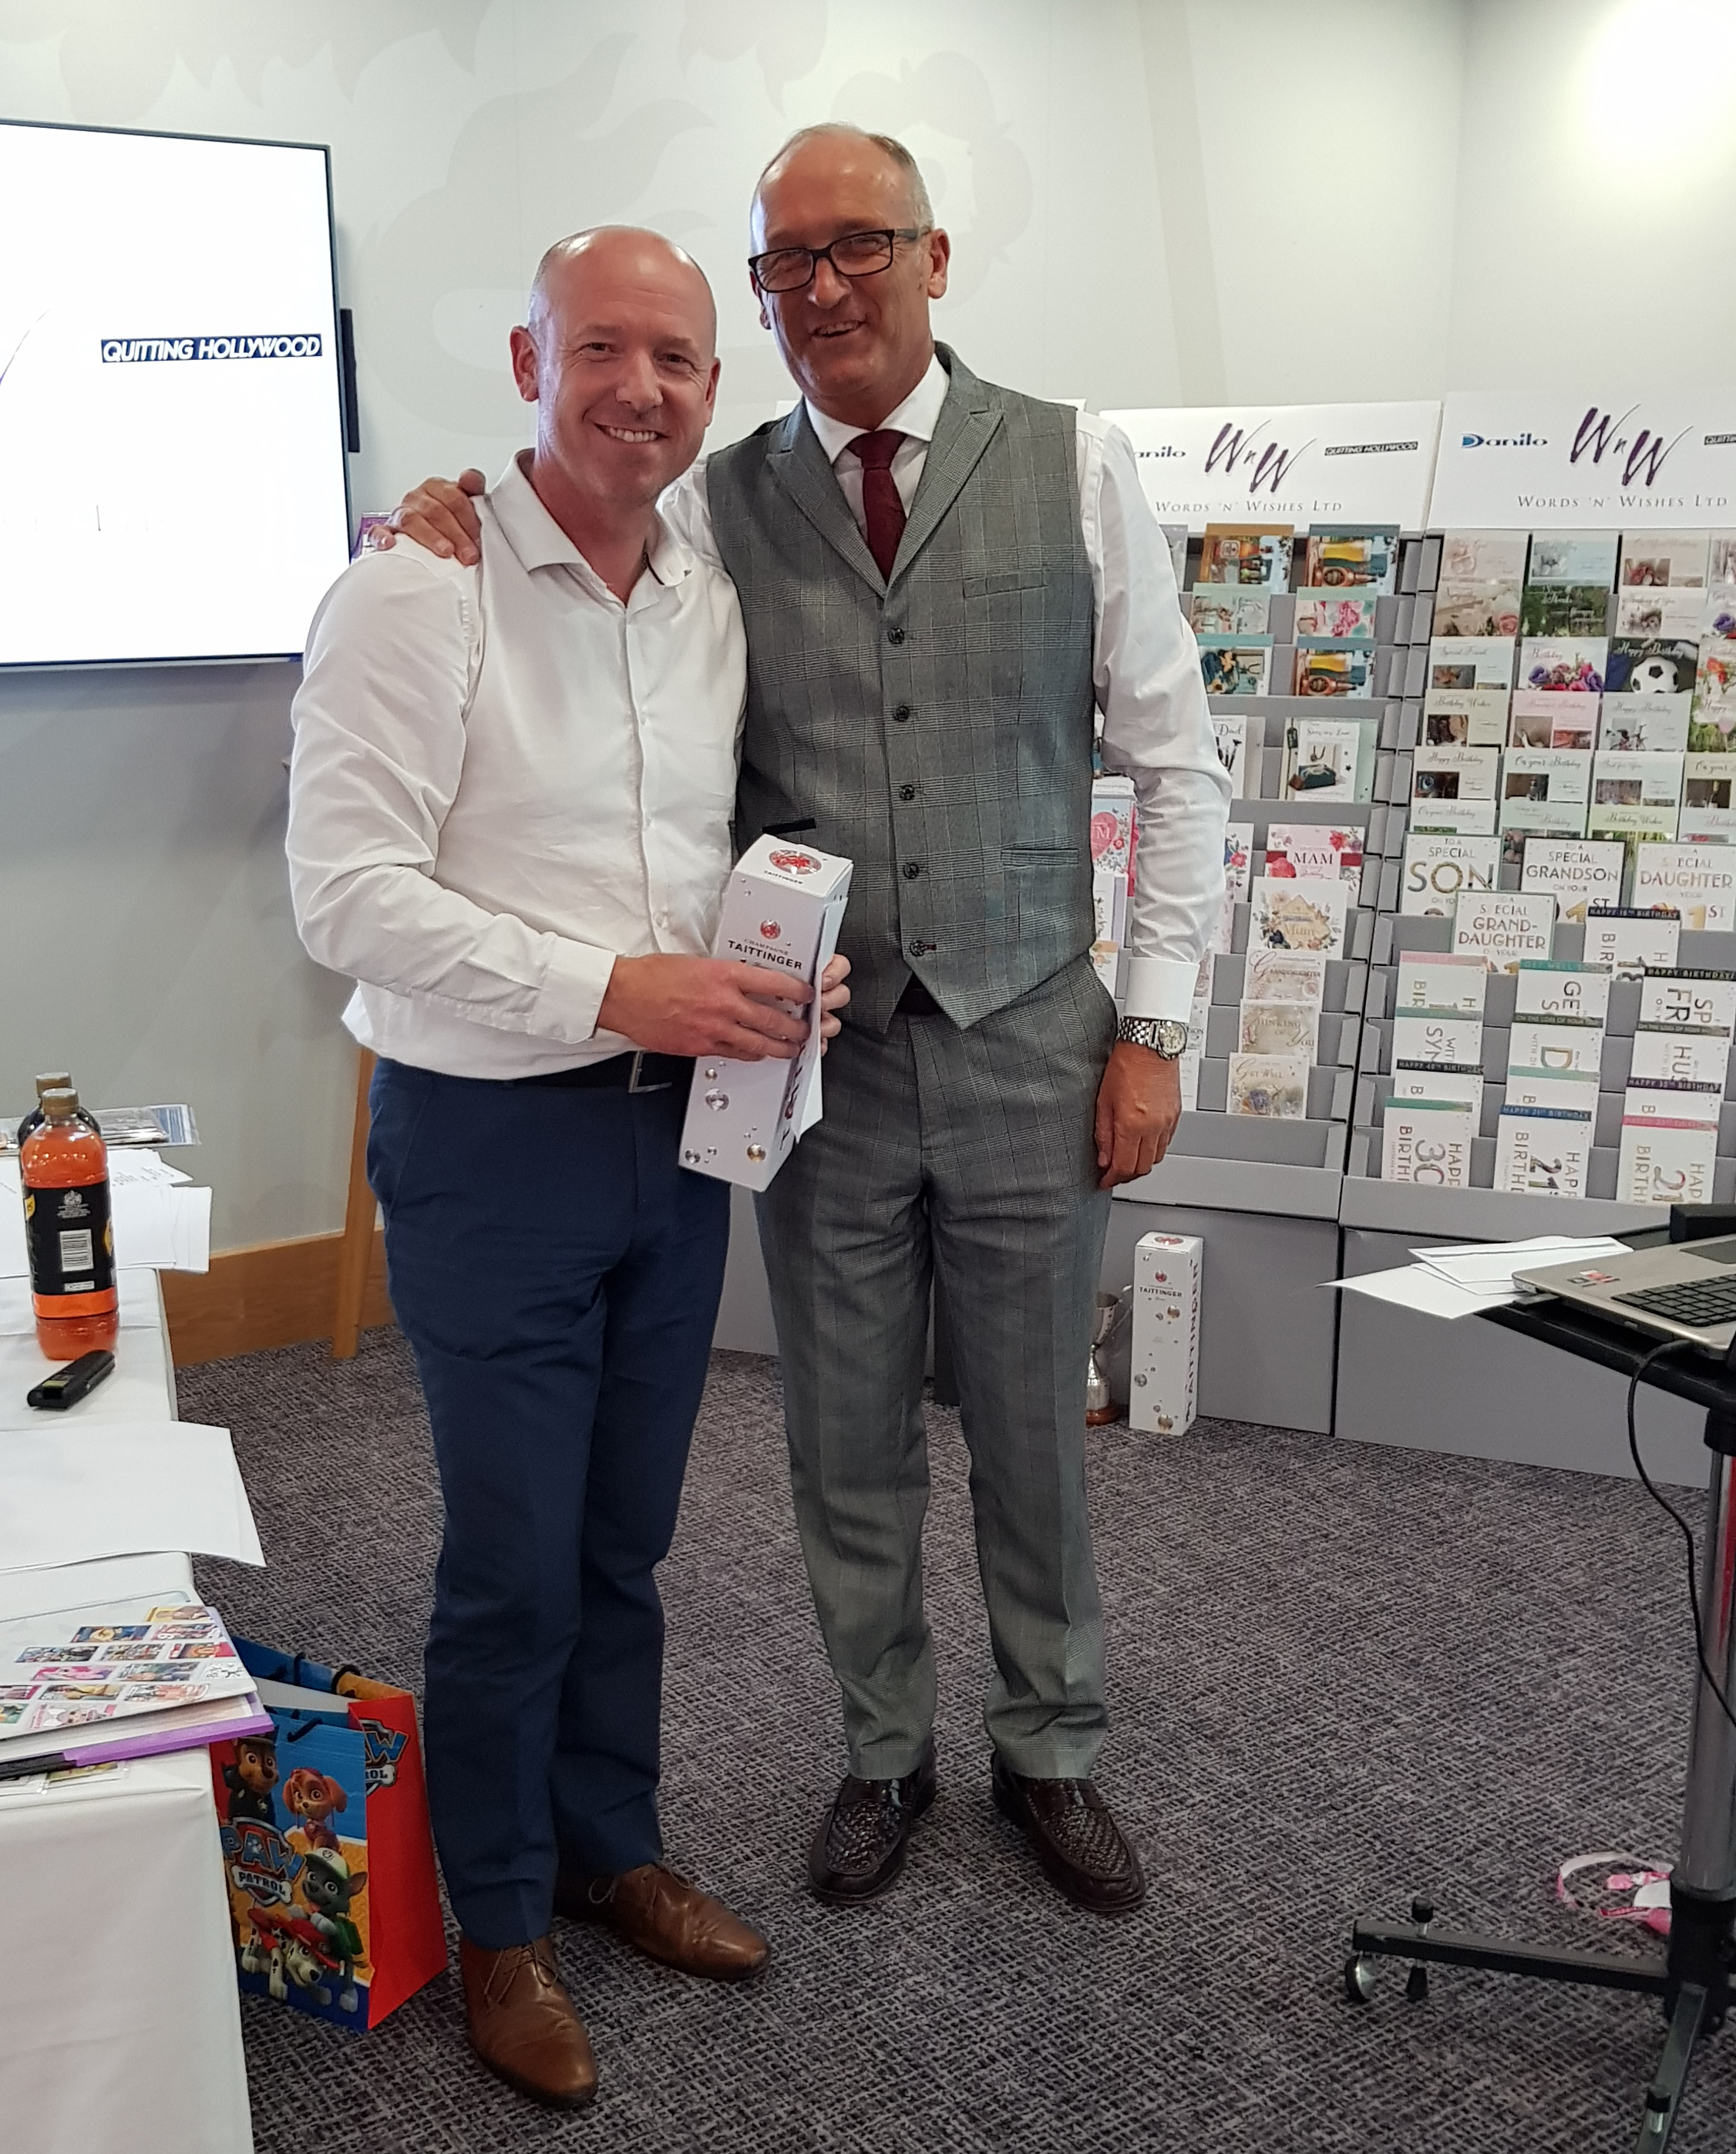 Above: It was not just Rachel who won sales awards, Scott (left) was crowned Words 'n' Wishes' Sales Person of the Year – Silver, this year. Scott is pictured here with Rod Brown, md of Words 'n' Wishes.